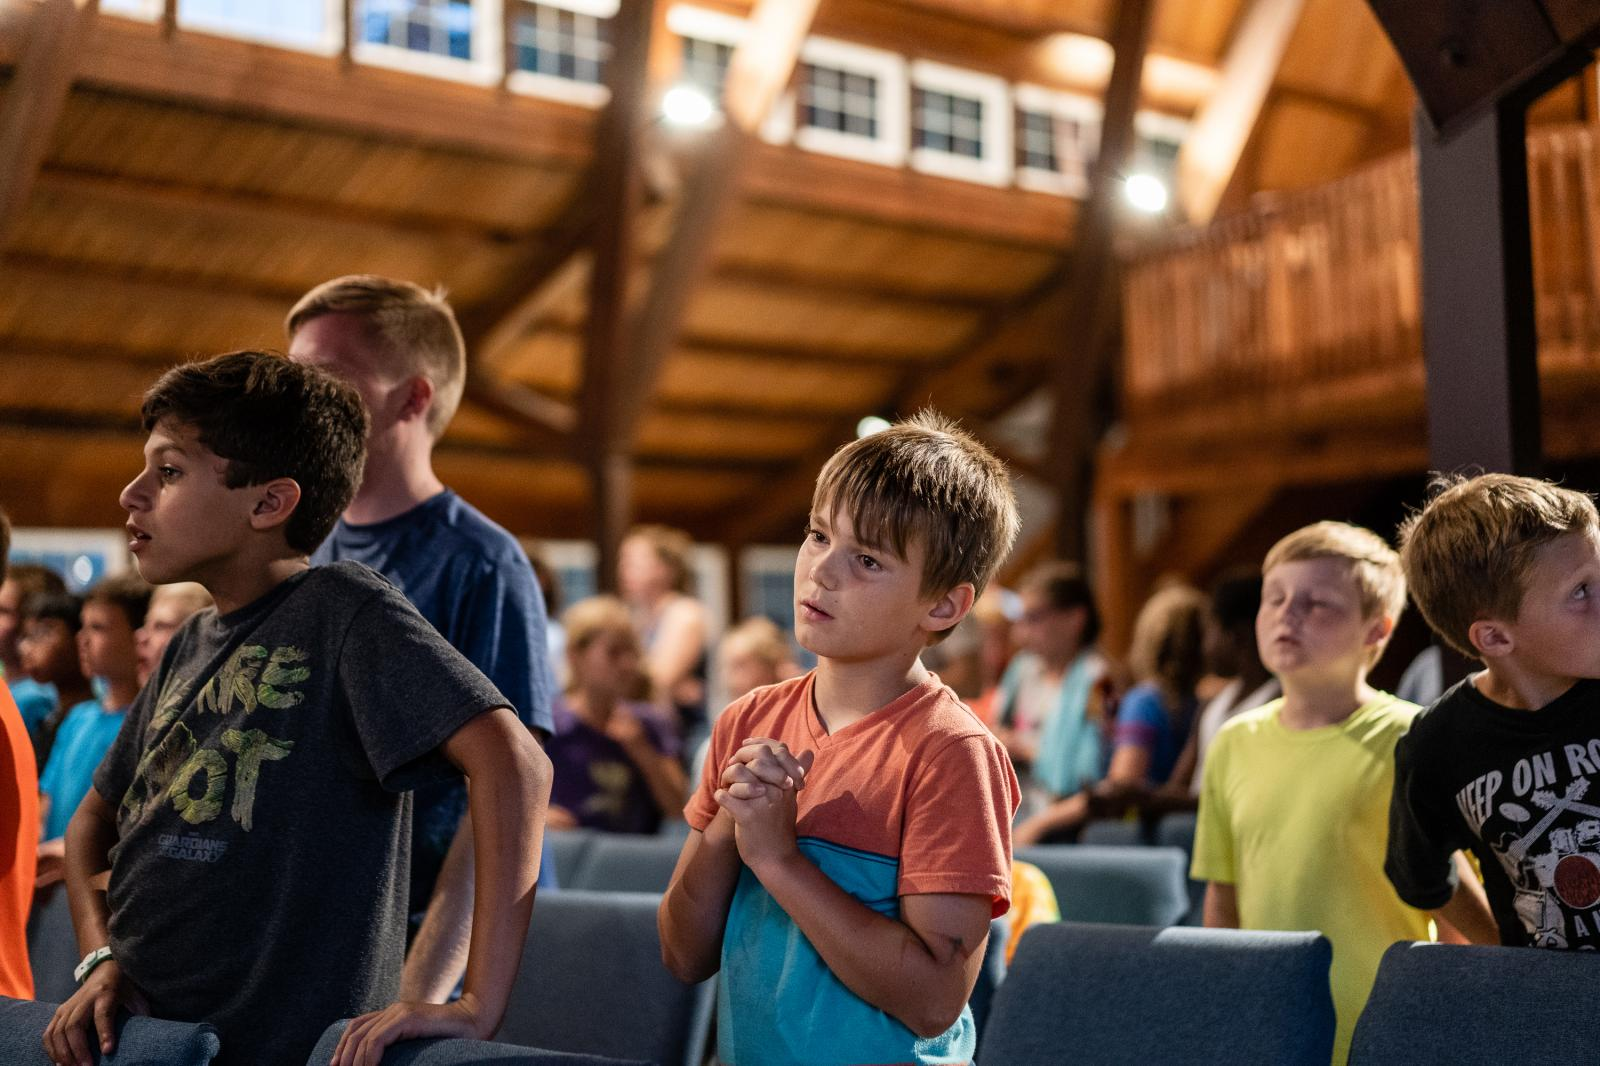 A camper prays during a chapel session at Riverside Lutheran Bible Camp in Story City, Iowa on Tuesday, July 16, 2019. ©2019 KC McGinnis